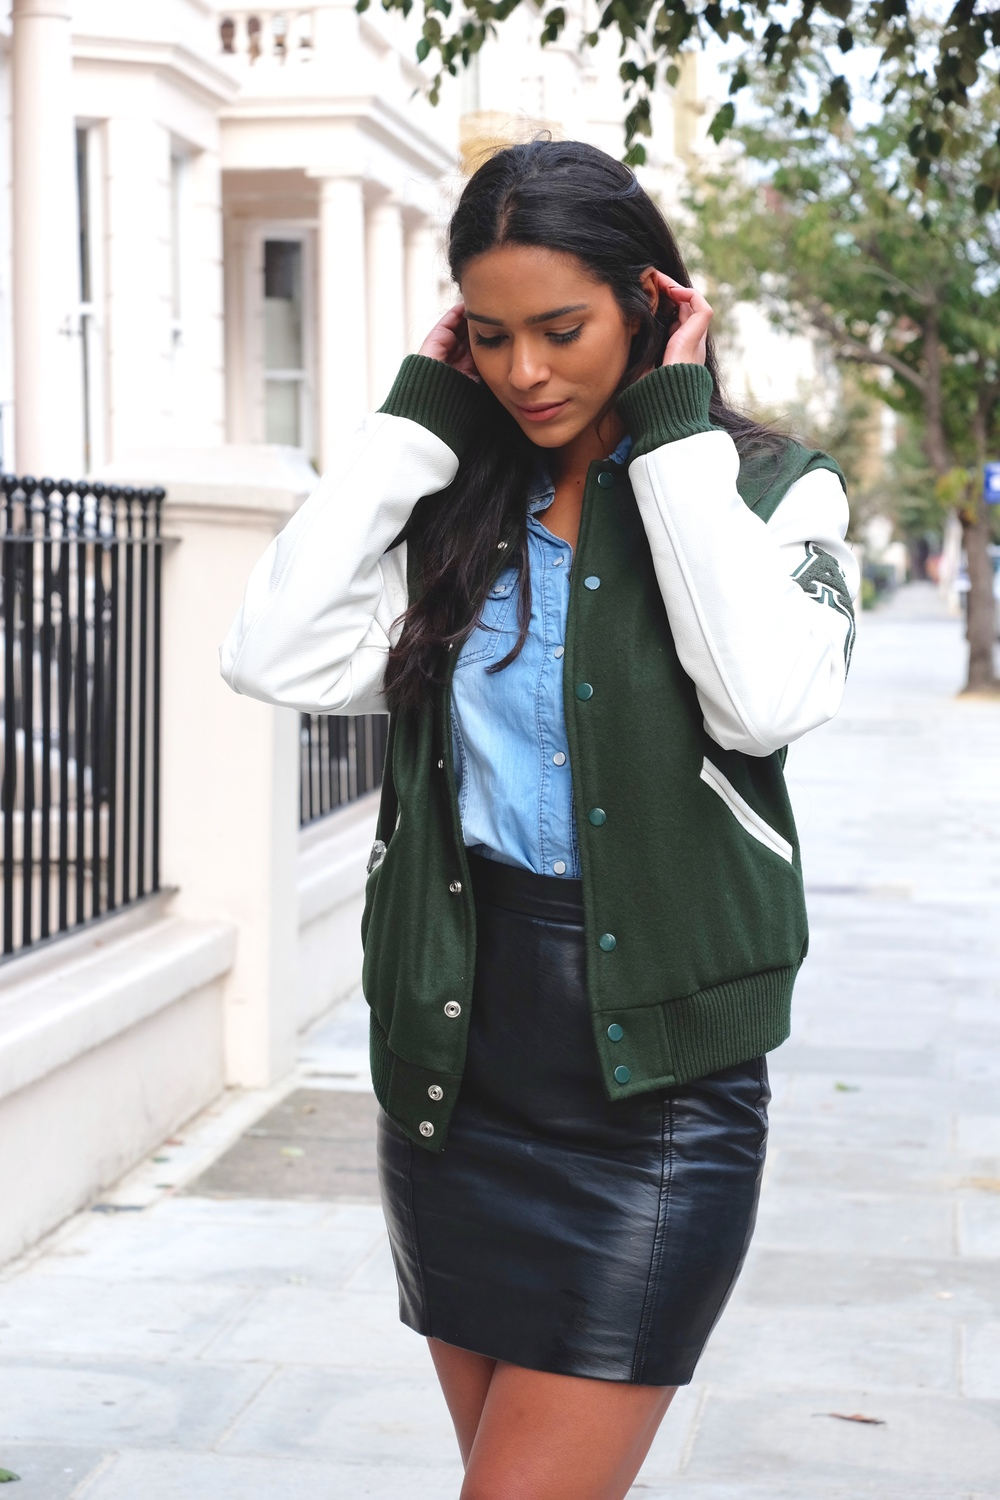 Carelle - Letterman jacket